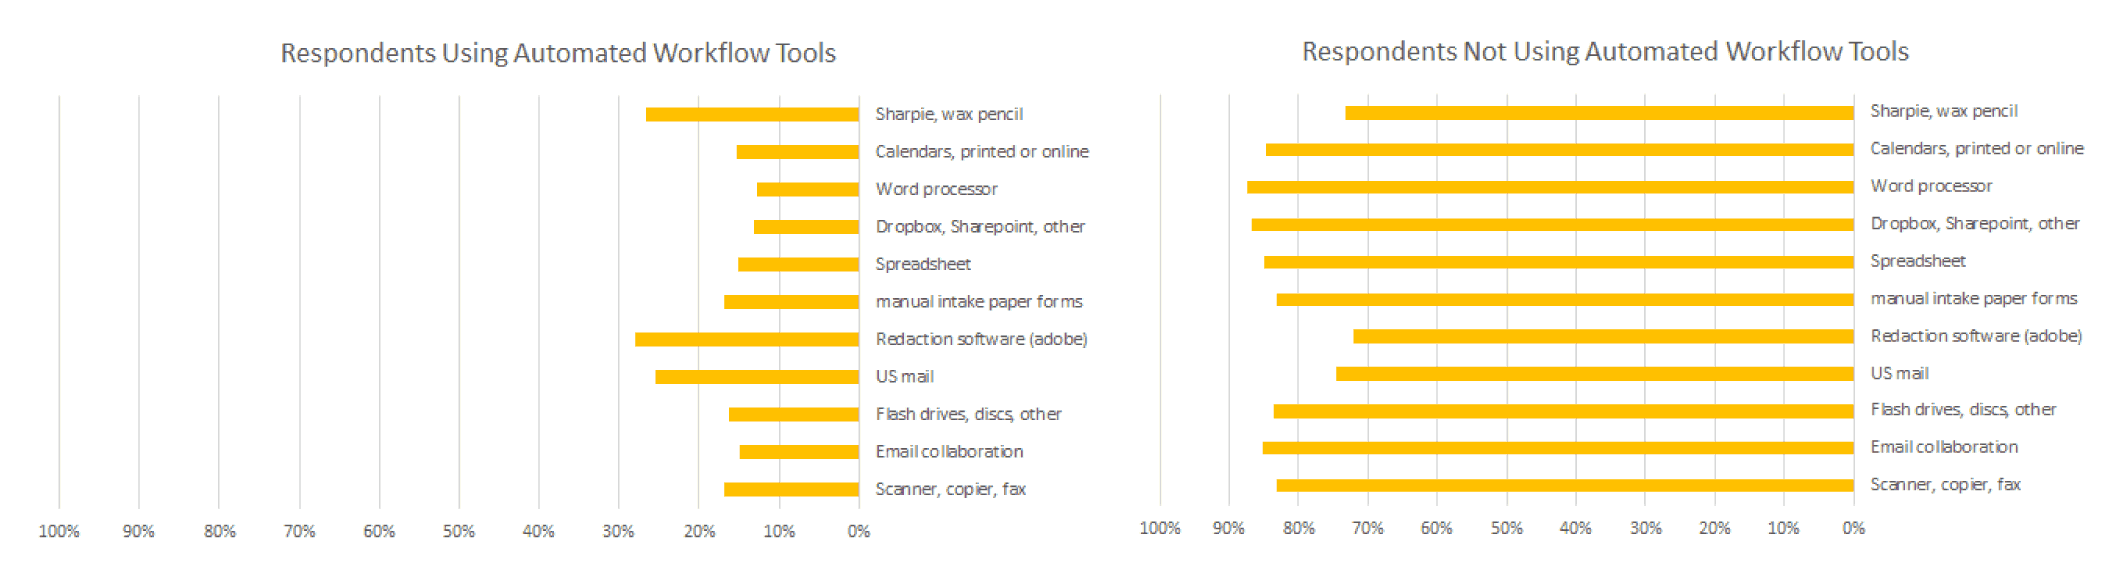 PiPR Survey - Tool Usage by Workflow Software Users